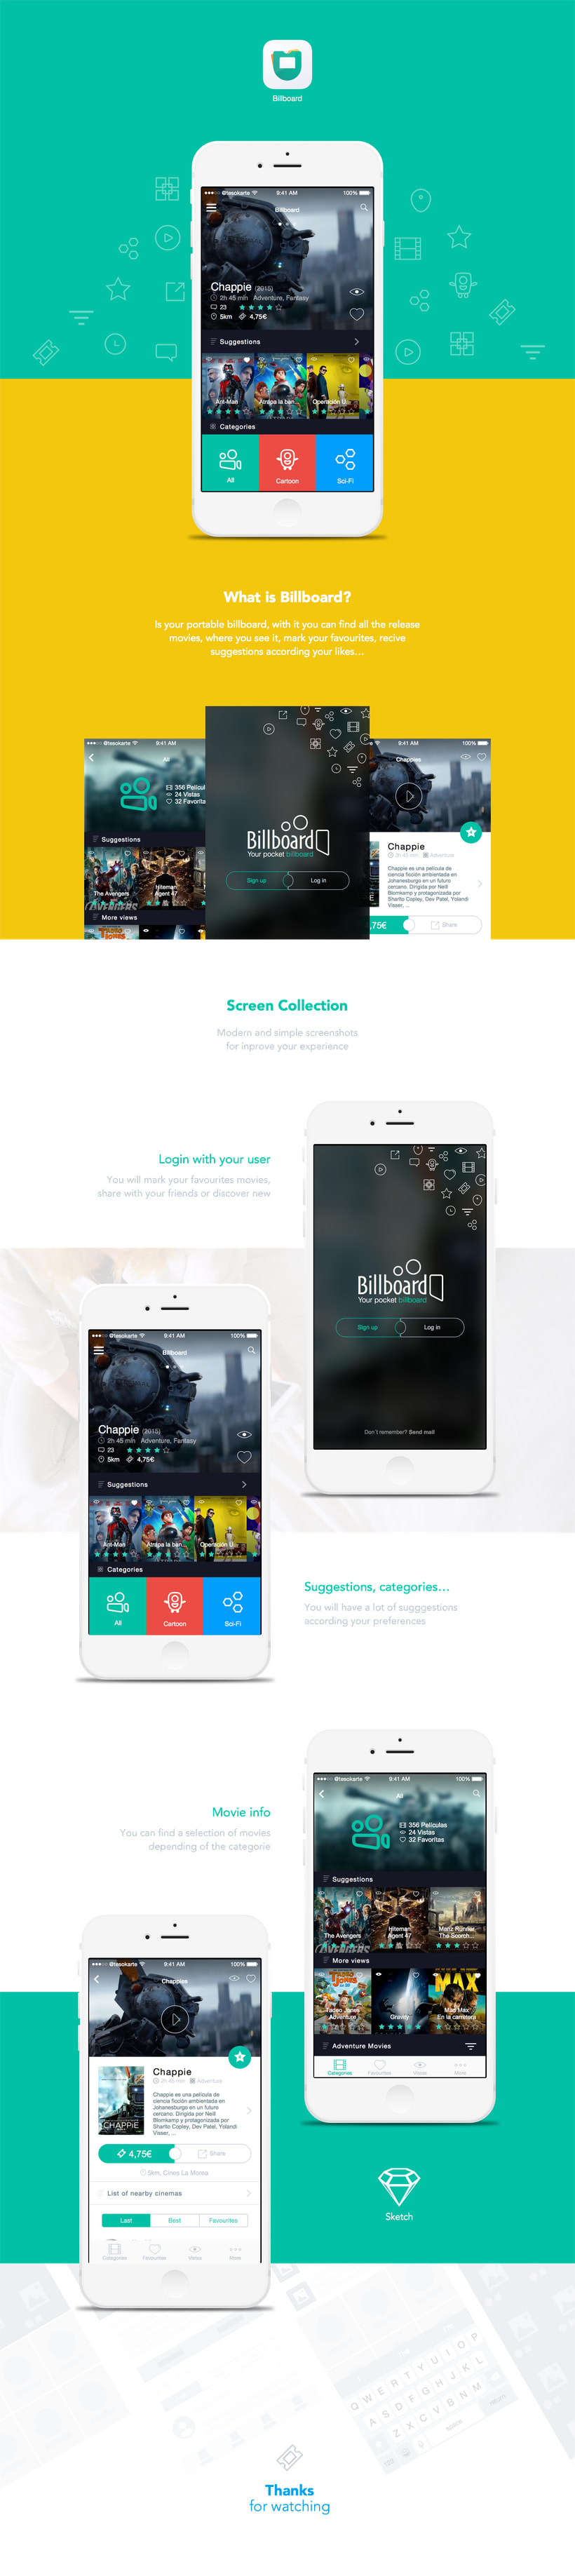 Billboard IOS APP 0